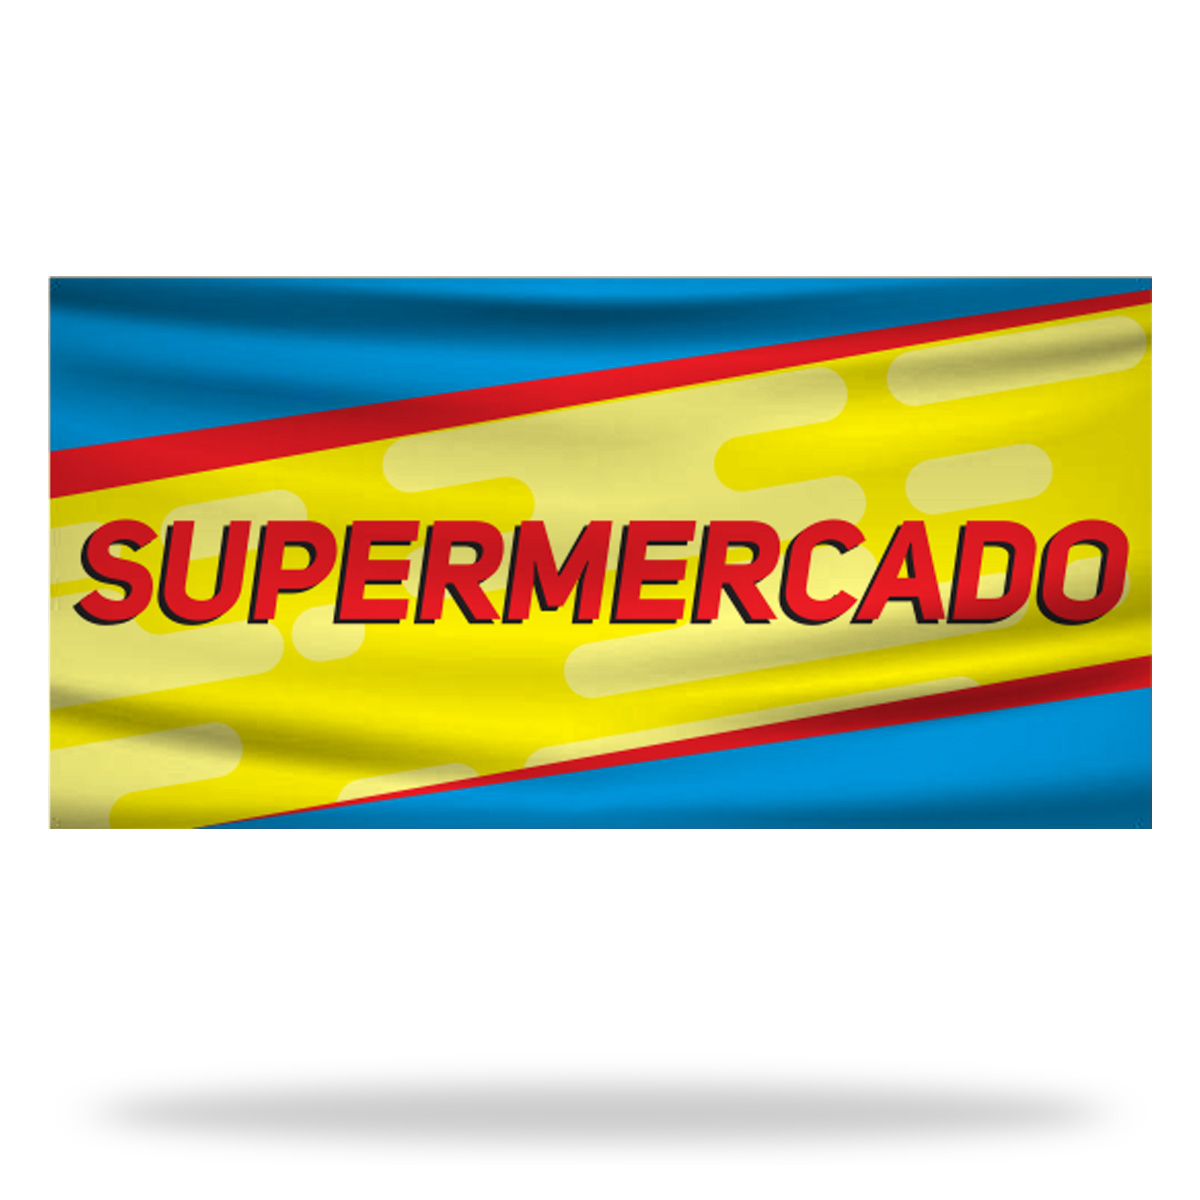 Spanish Supermarket Flags & Banners Design 01